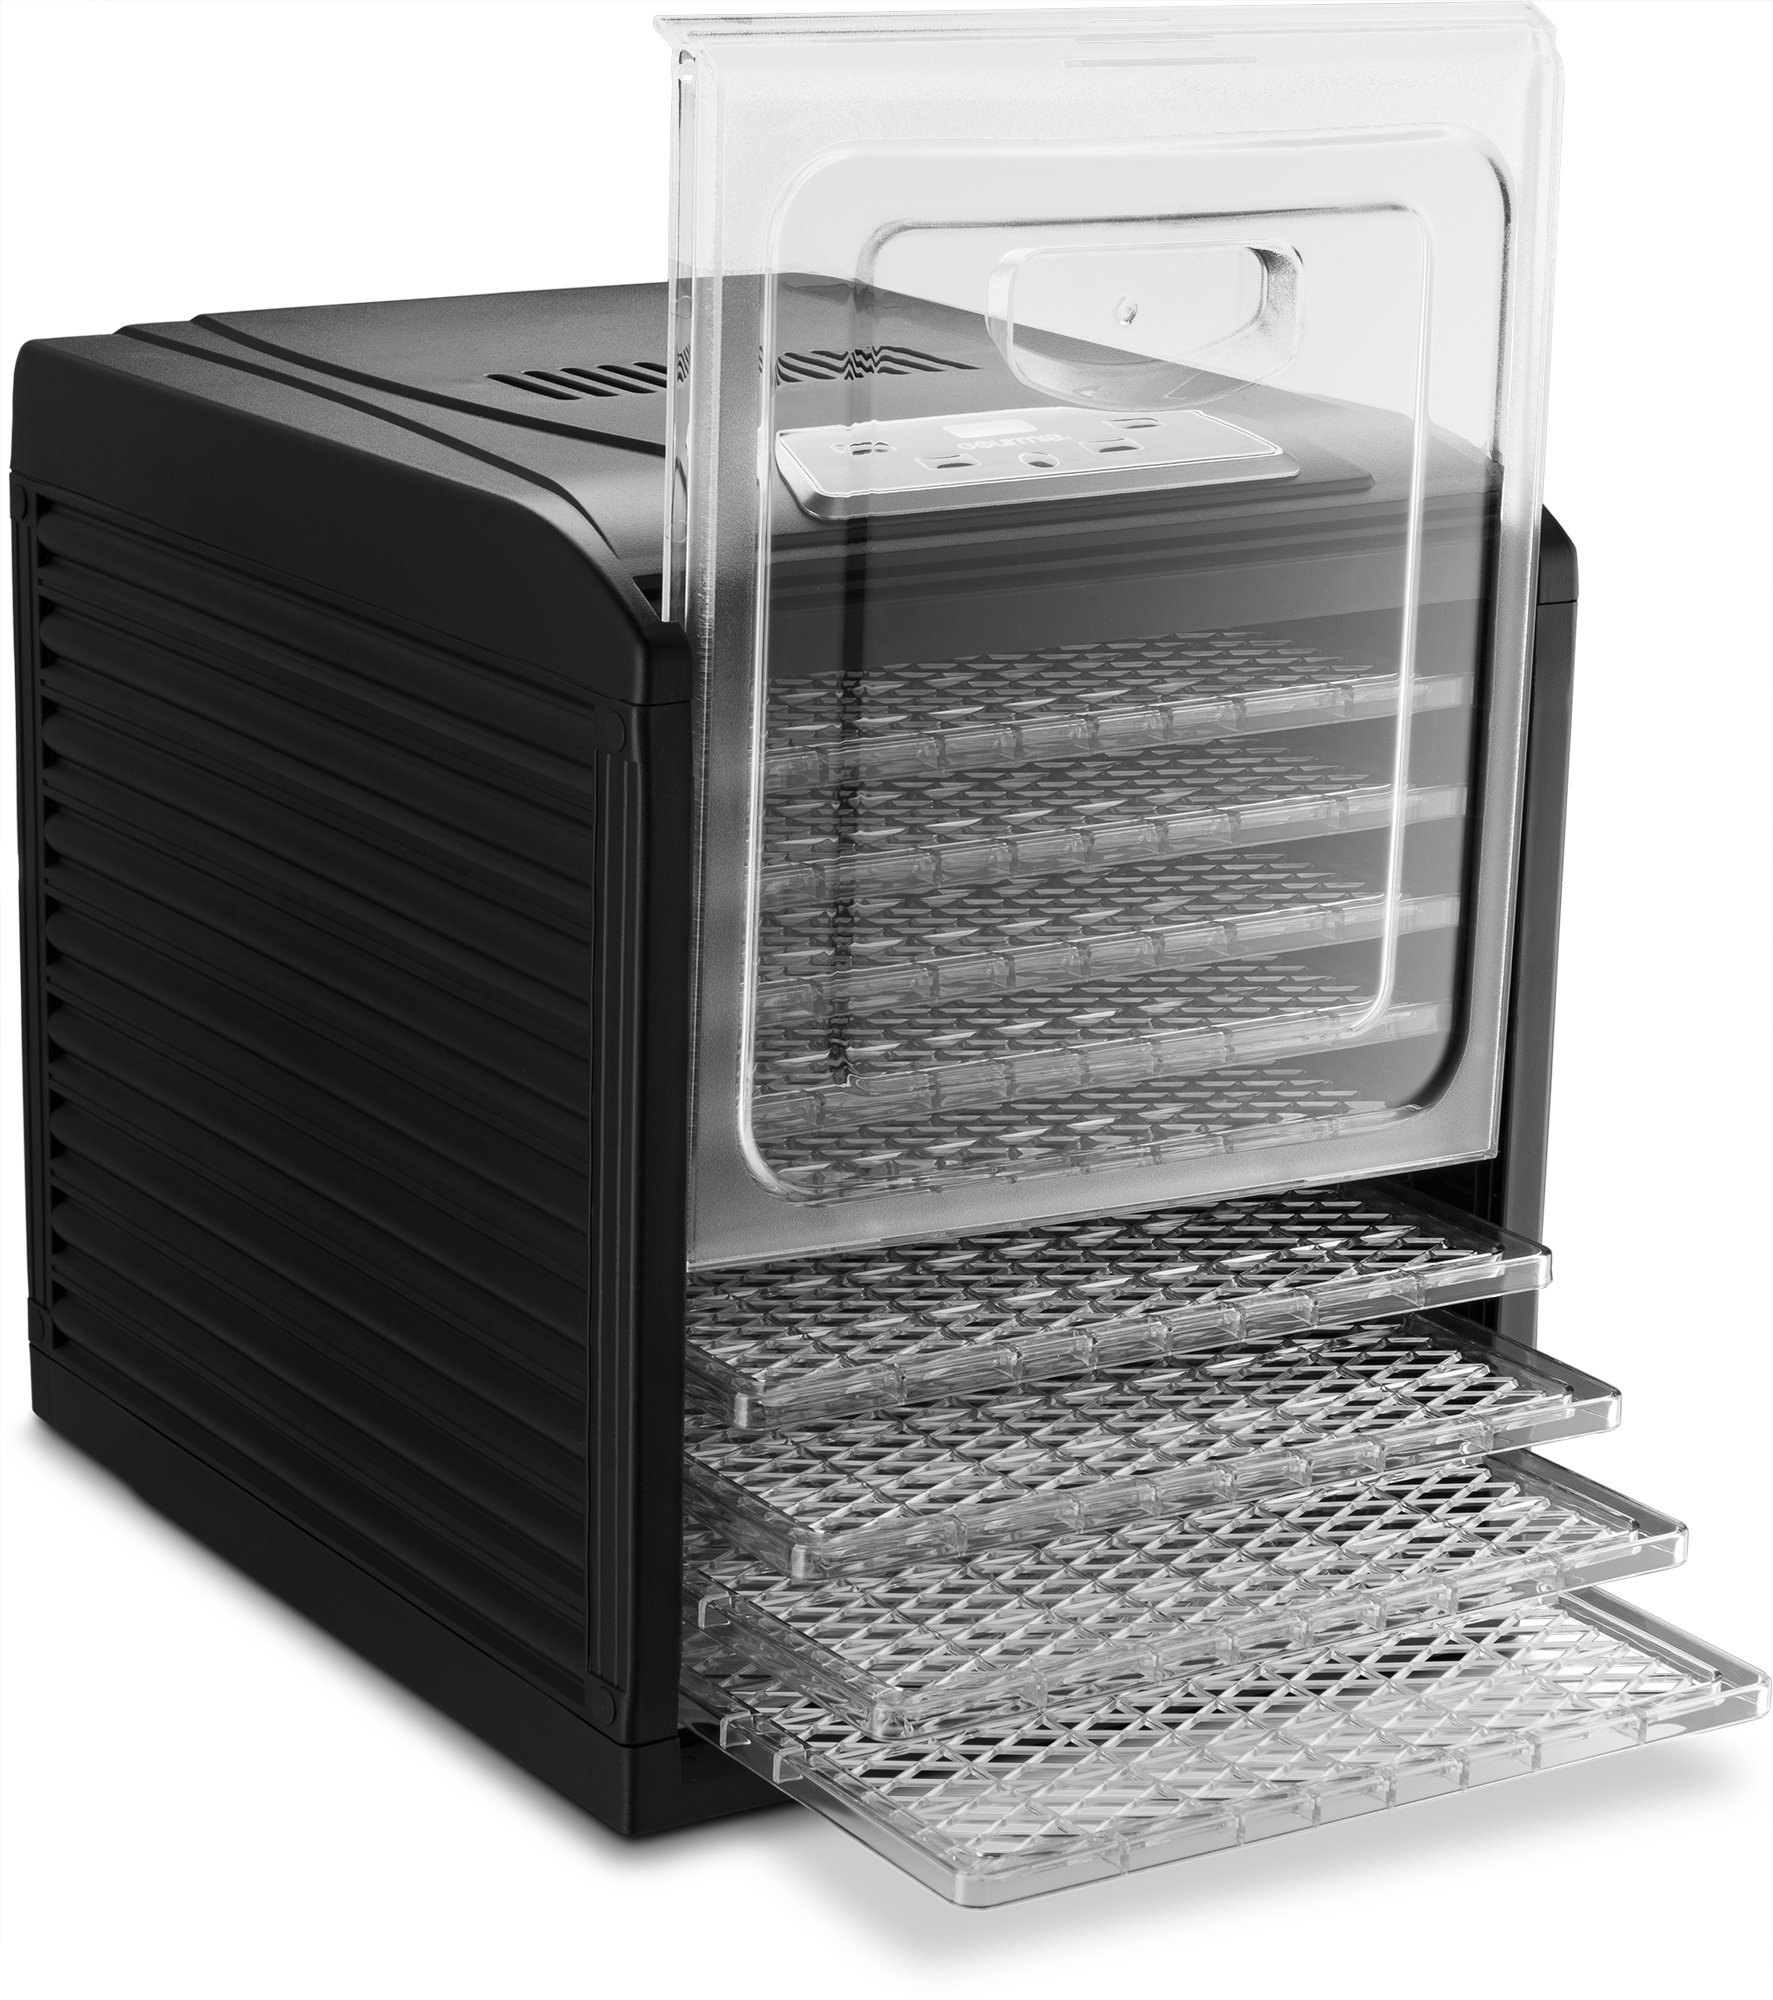 Gourmia GFD1950 Digital Food Dehydrator - 9 Drying Trays Plus Fruit Leather Tray - Digital Temperature Control - Transparent Window - Free recipe Book Included by Gourmia (Image #5)